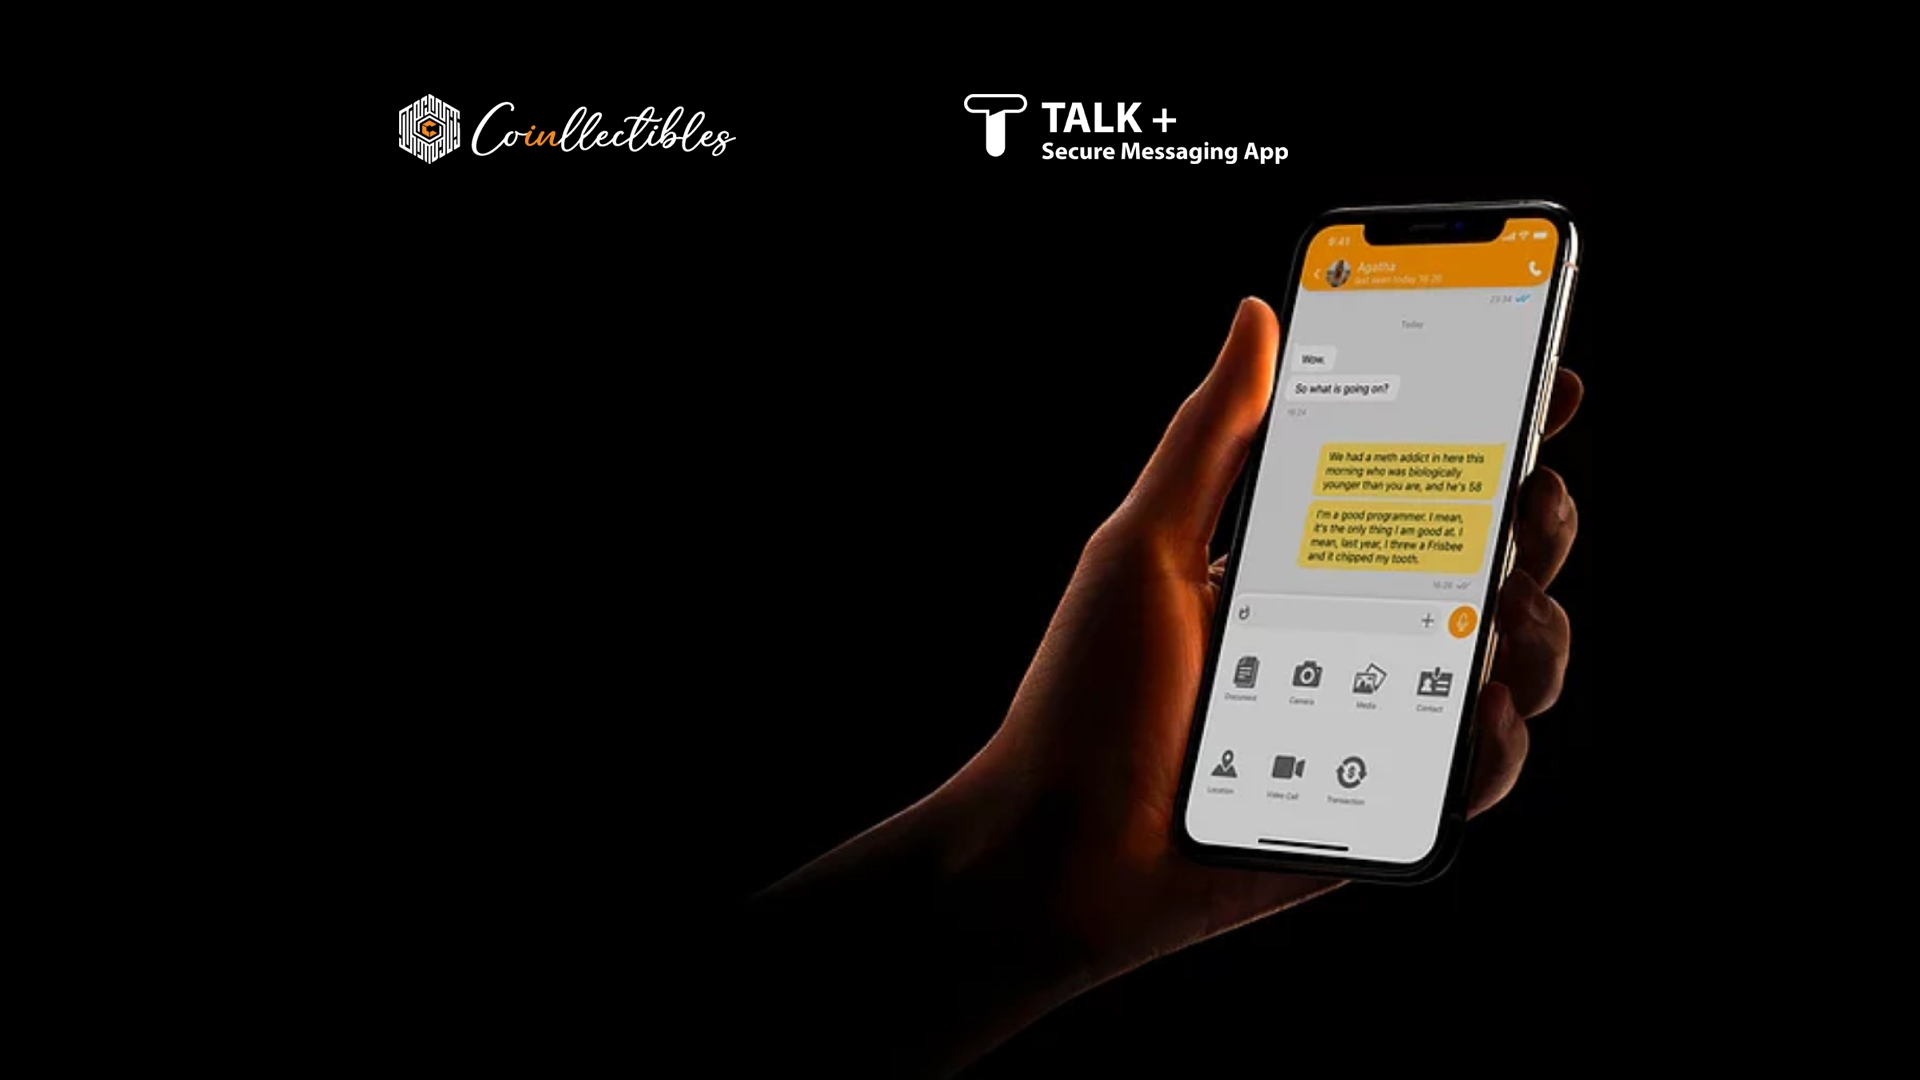 TALK+ is now a Coinllectibles Group company